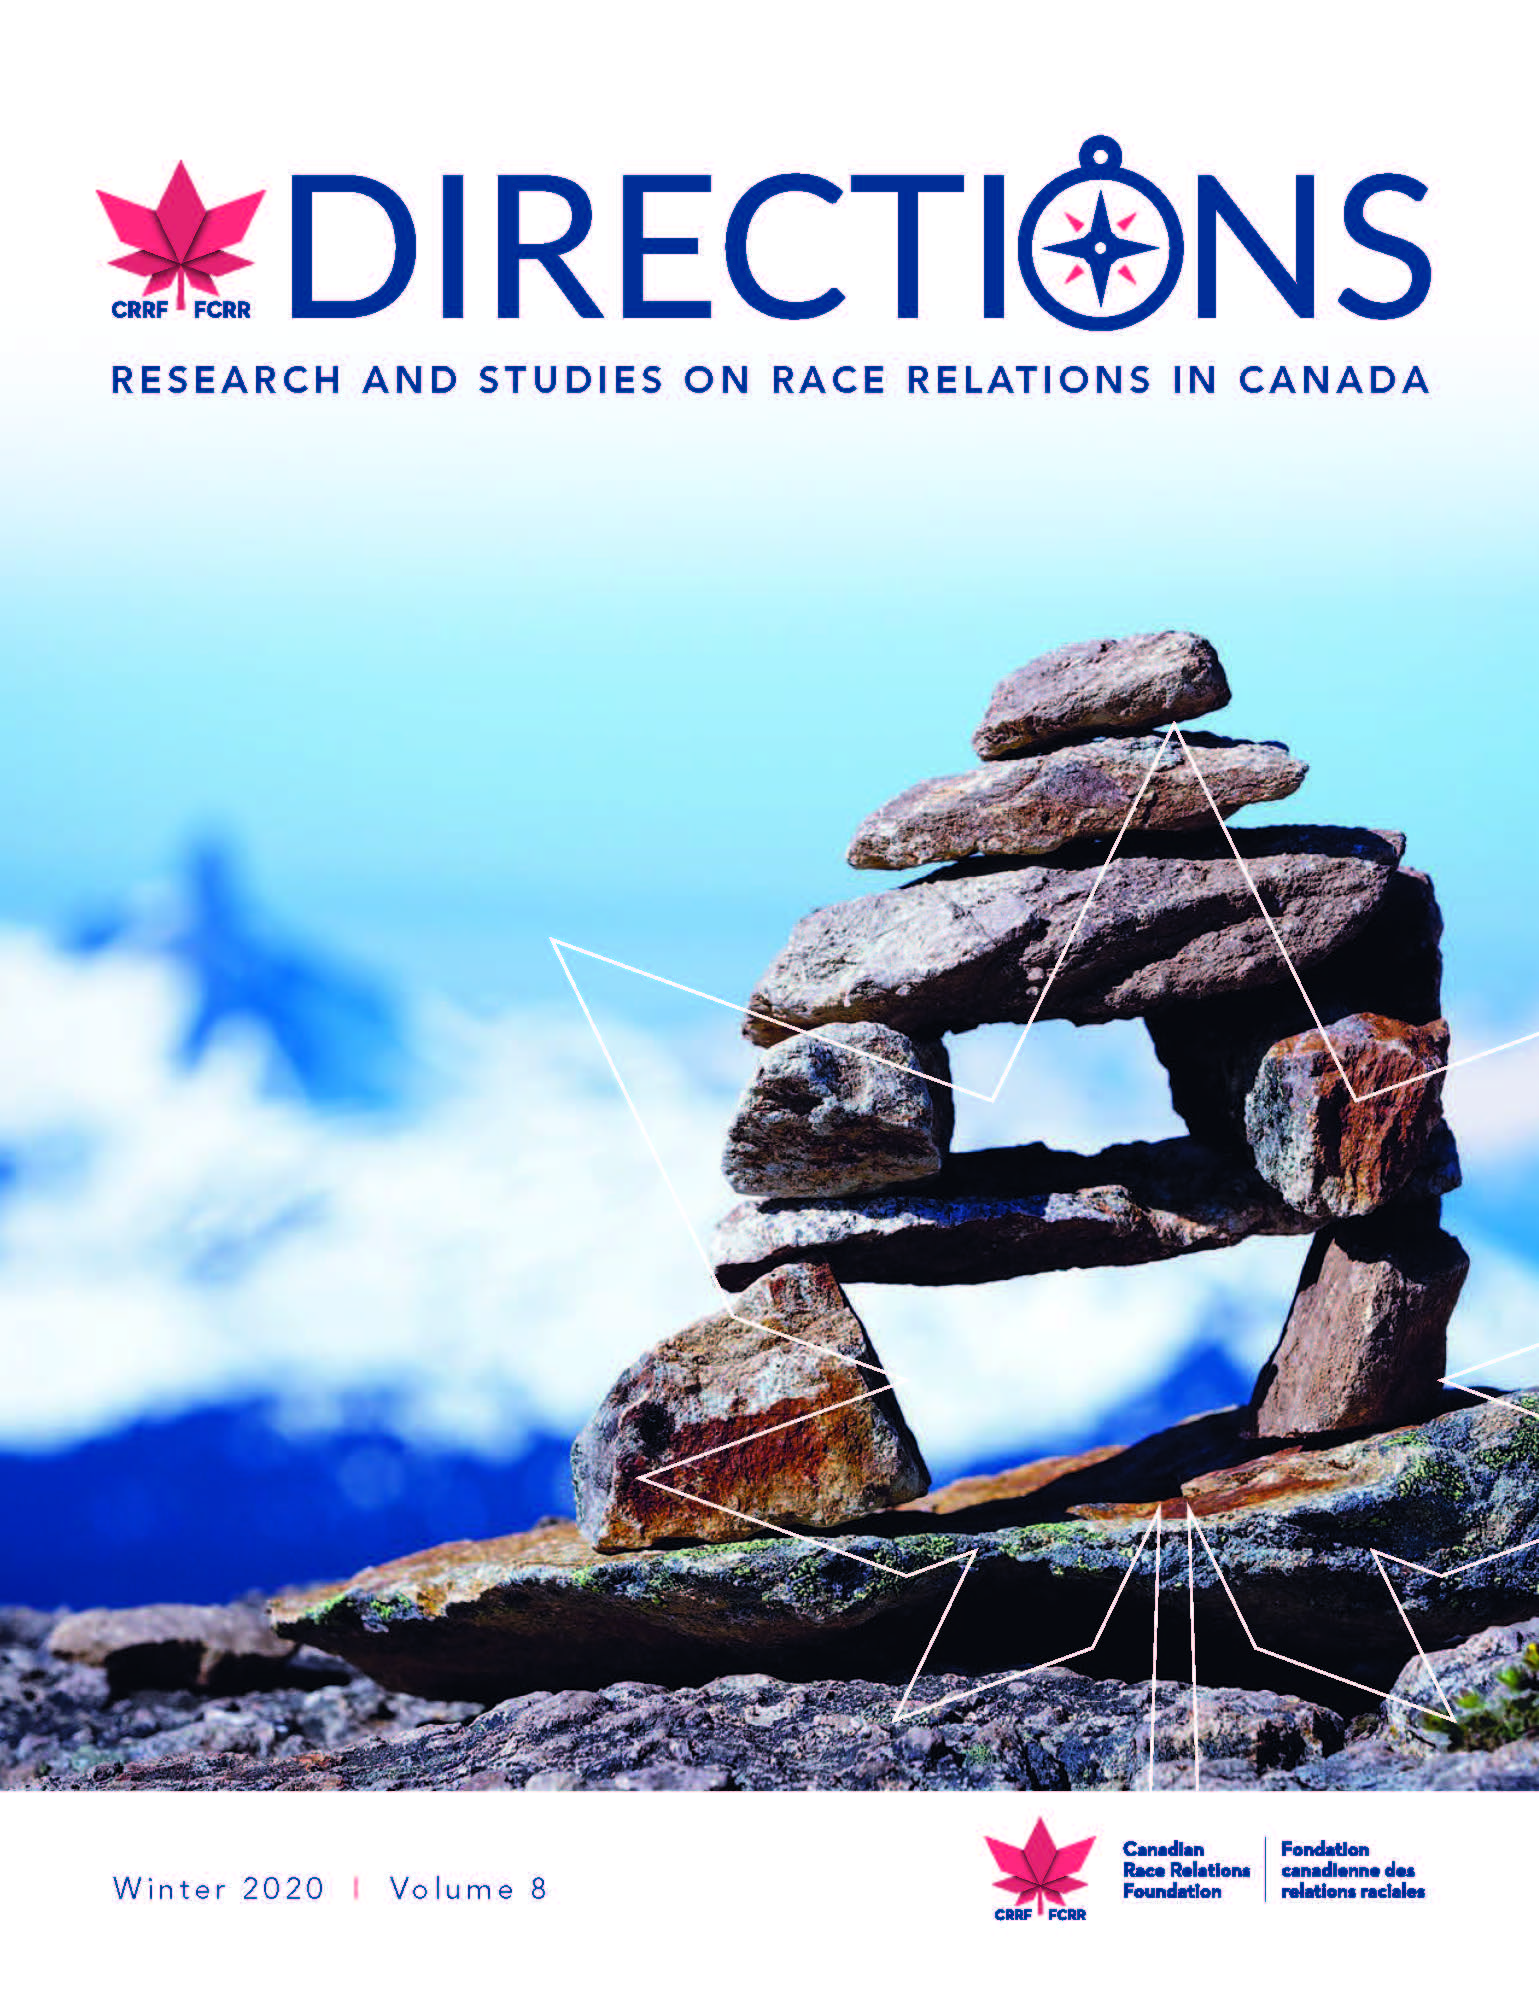 Directions Volume 8 Publication